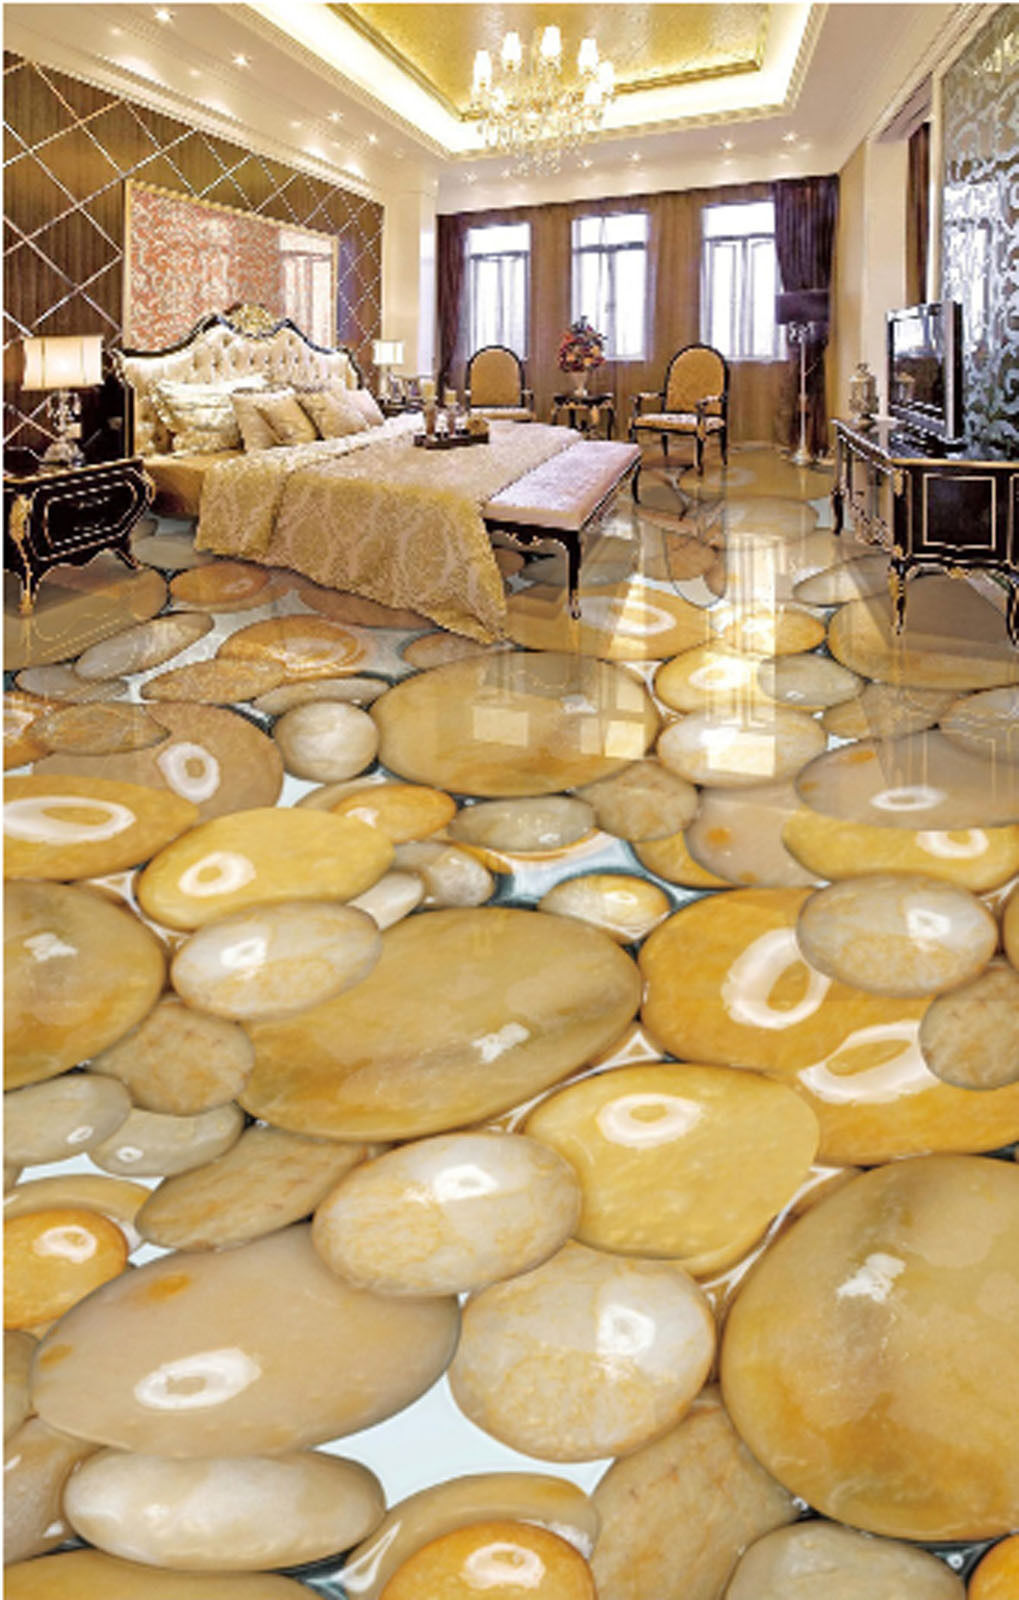 3D Stone Painting 574 Floor WallPaper Murals Wallpaper Mural Print AJ AU Lemon